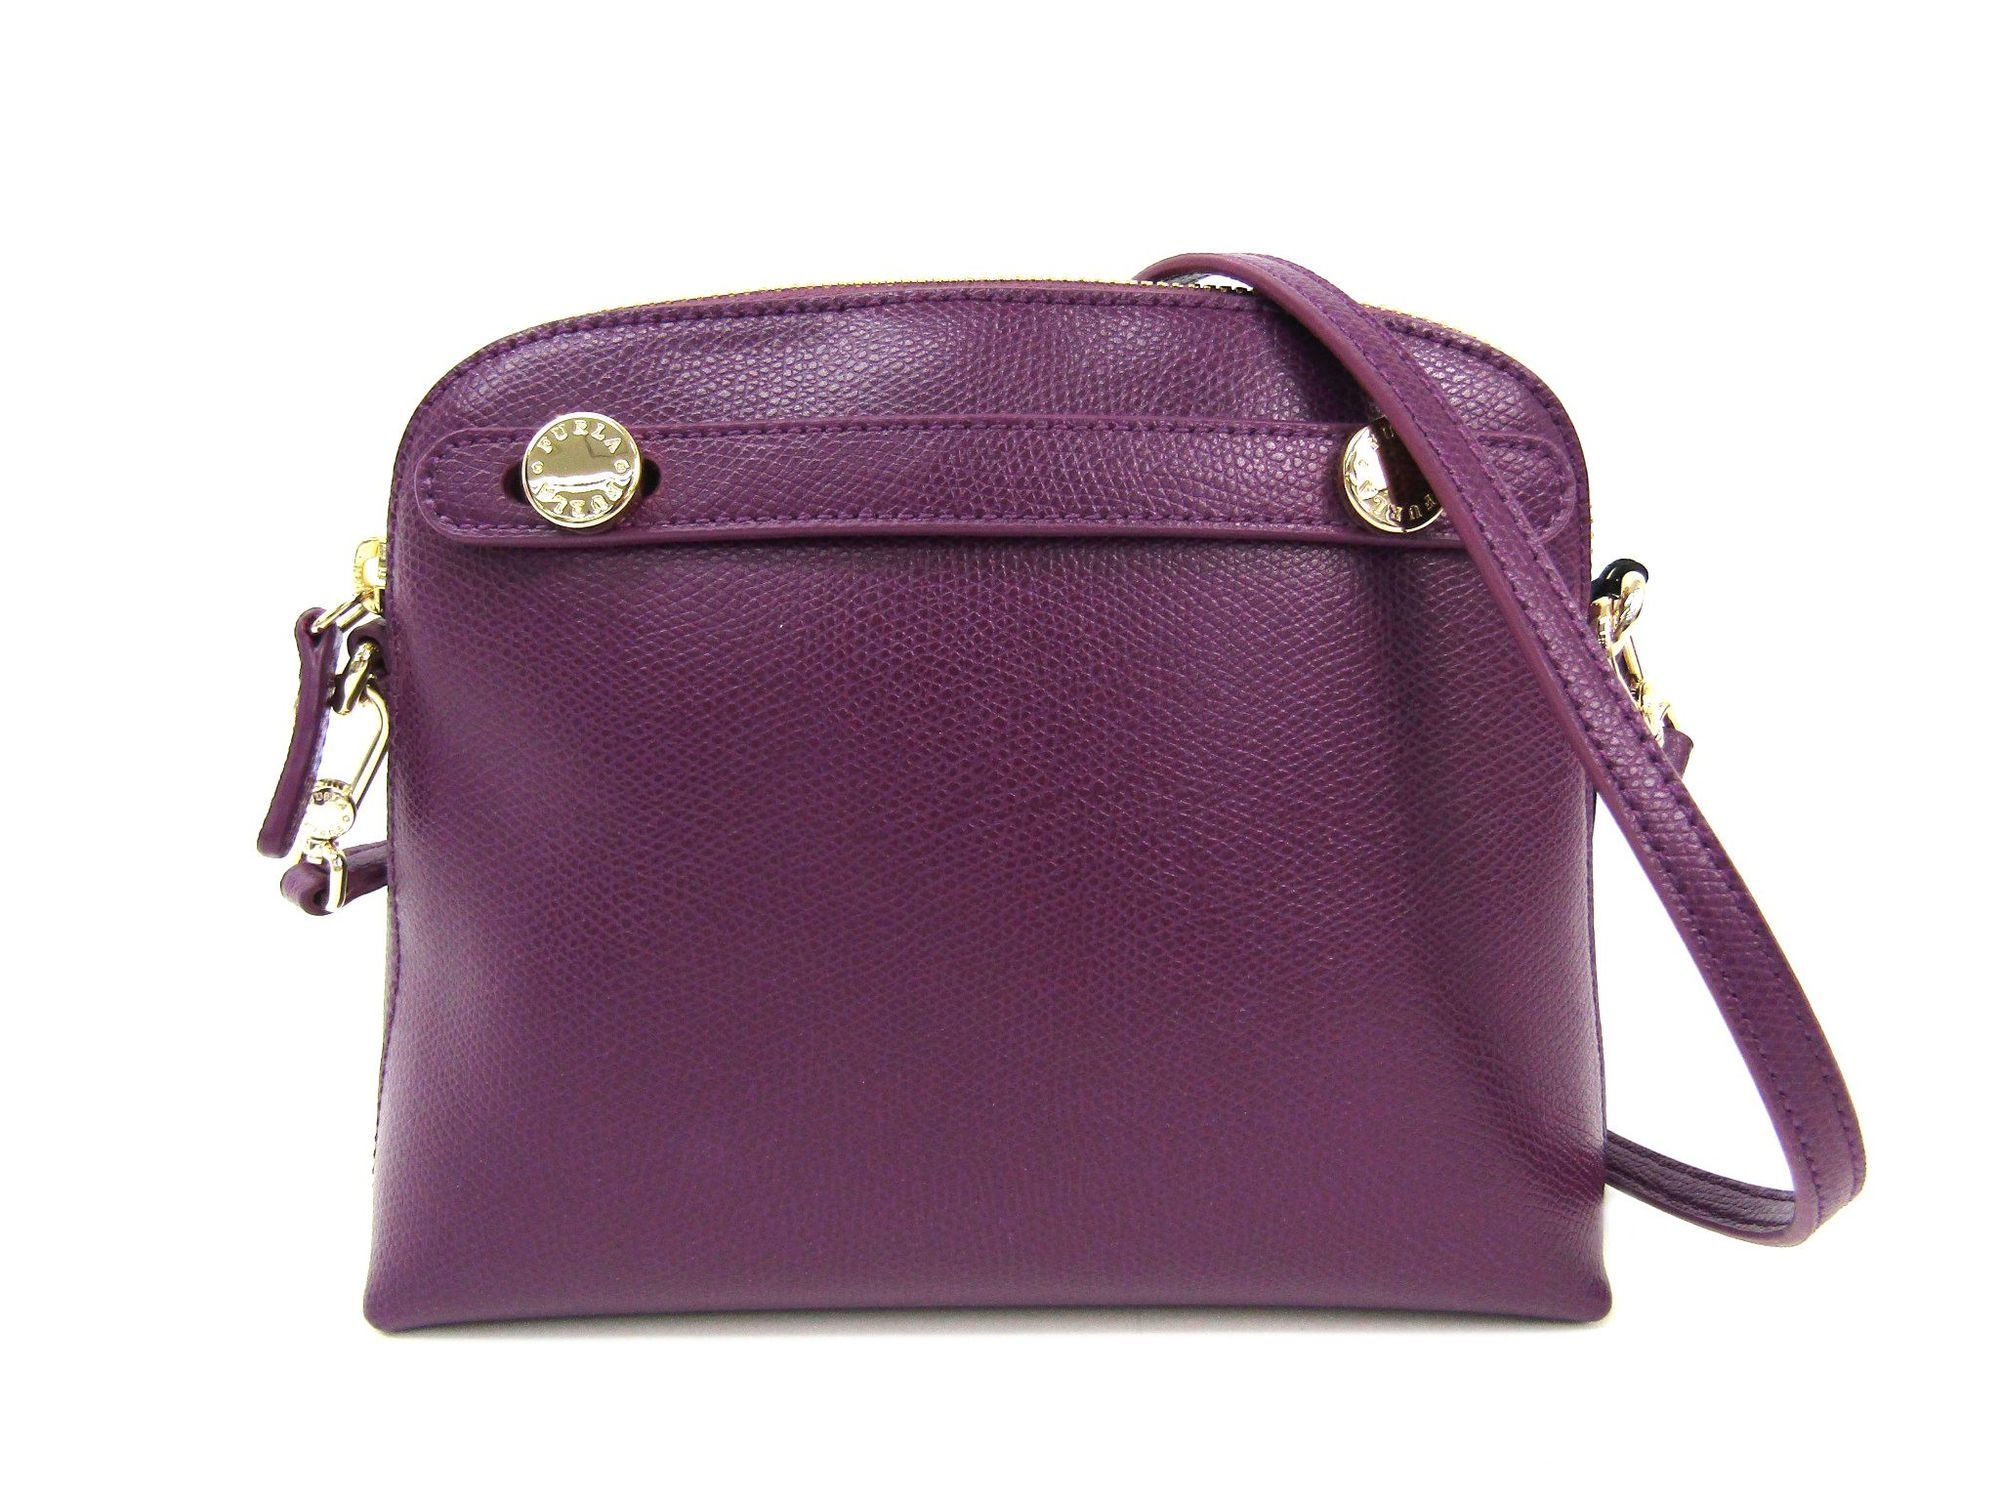 Auth Furla Piper Mini Crossbody Shoulder Bag Leather Aubergine Metropolis Authentic Image Is Loading